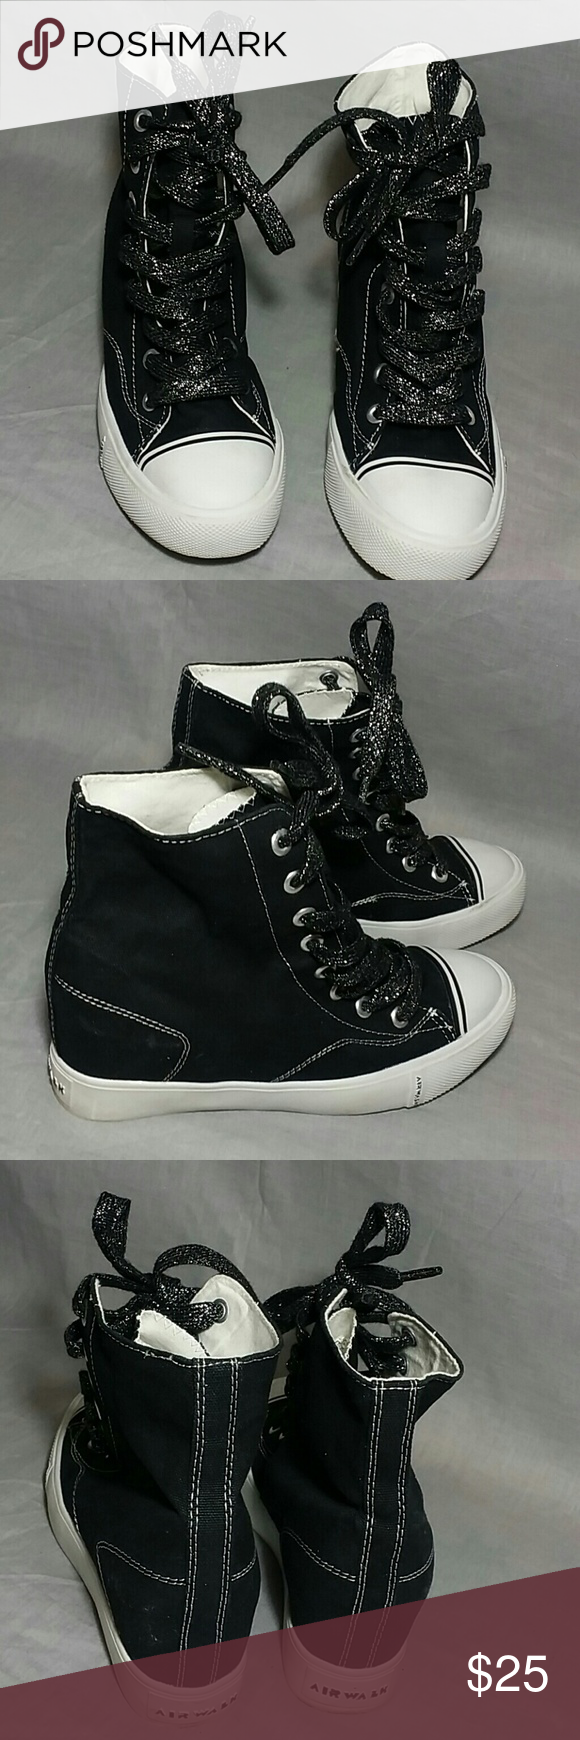 fff68b3bd4c1 Women s Airwalk High Top Wedges 7.5 M Canvas Lift up shoes heels inside  2.5